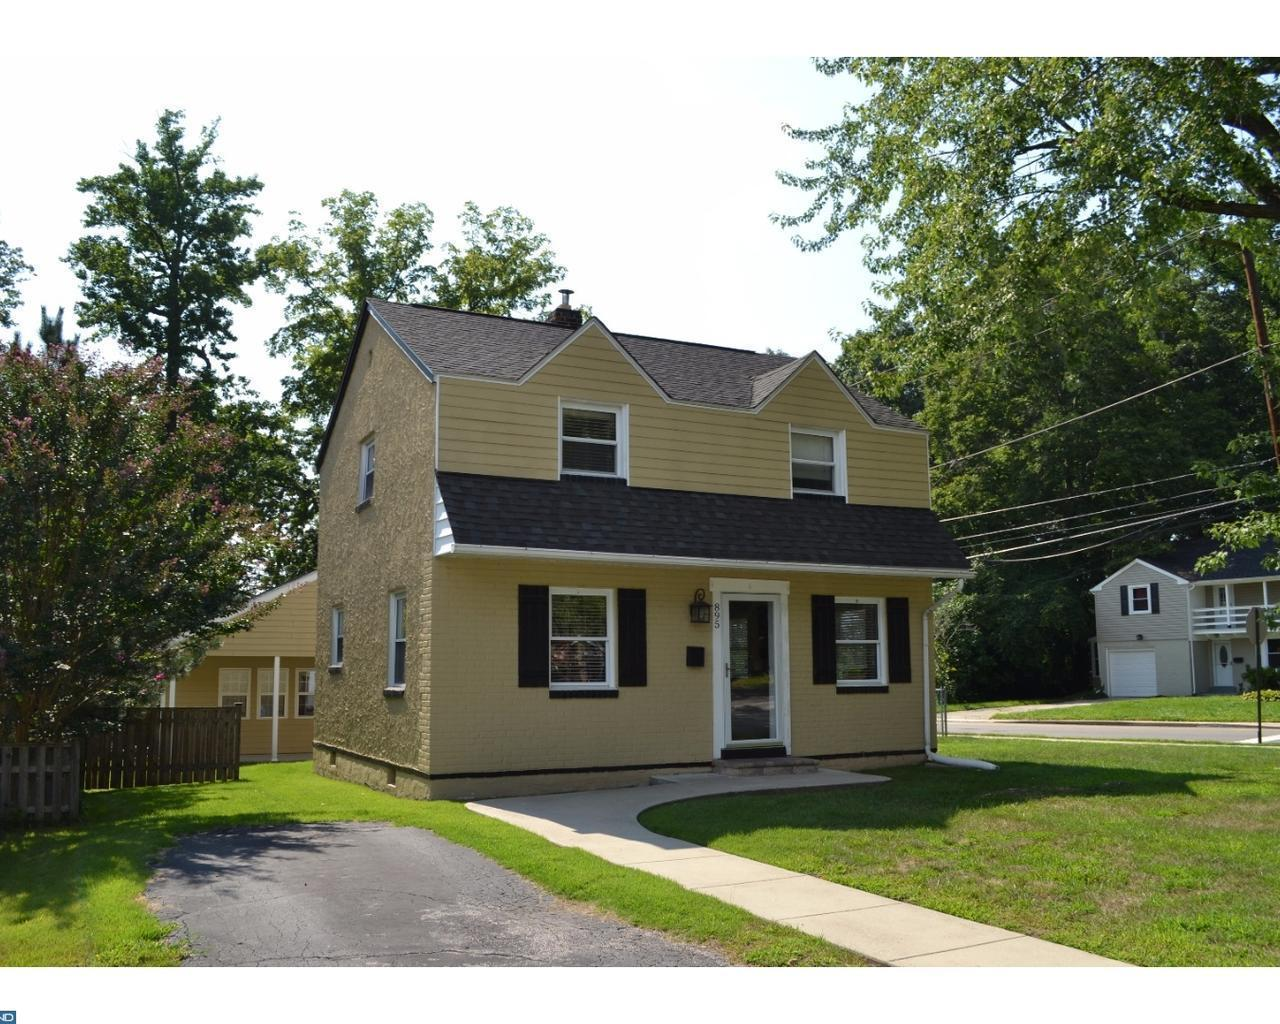 895 quince ln secane pa 19018 mls 7039587 redfin for 7 kitchen lane harding pa